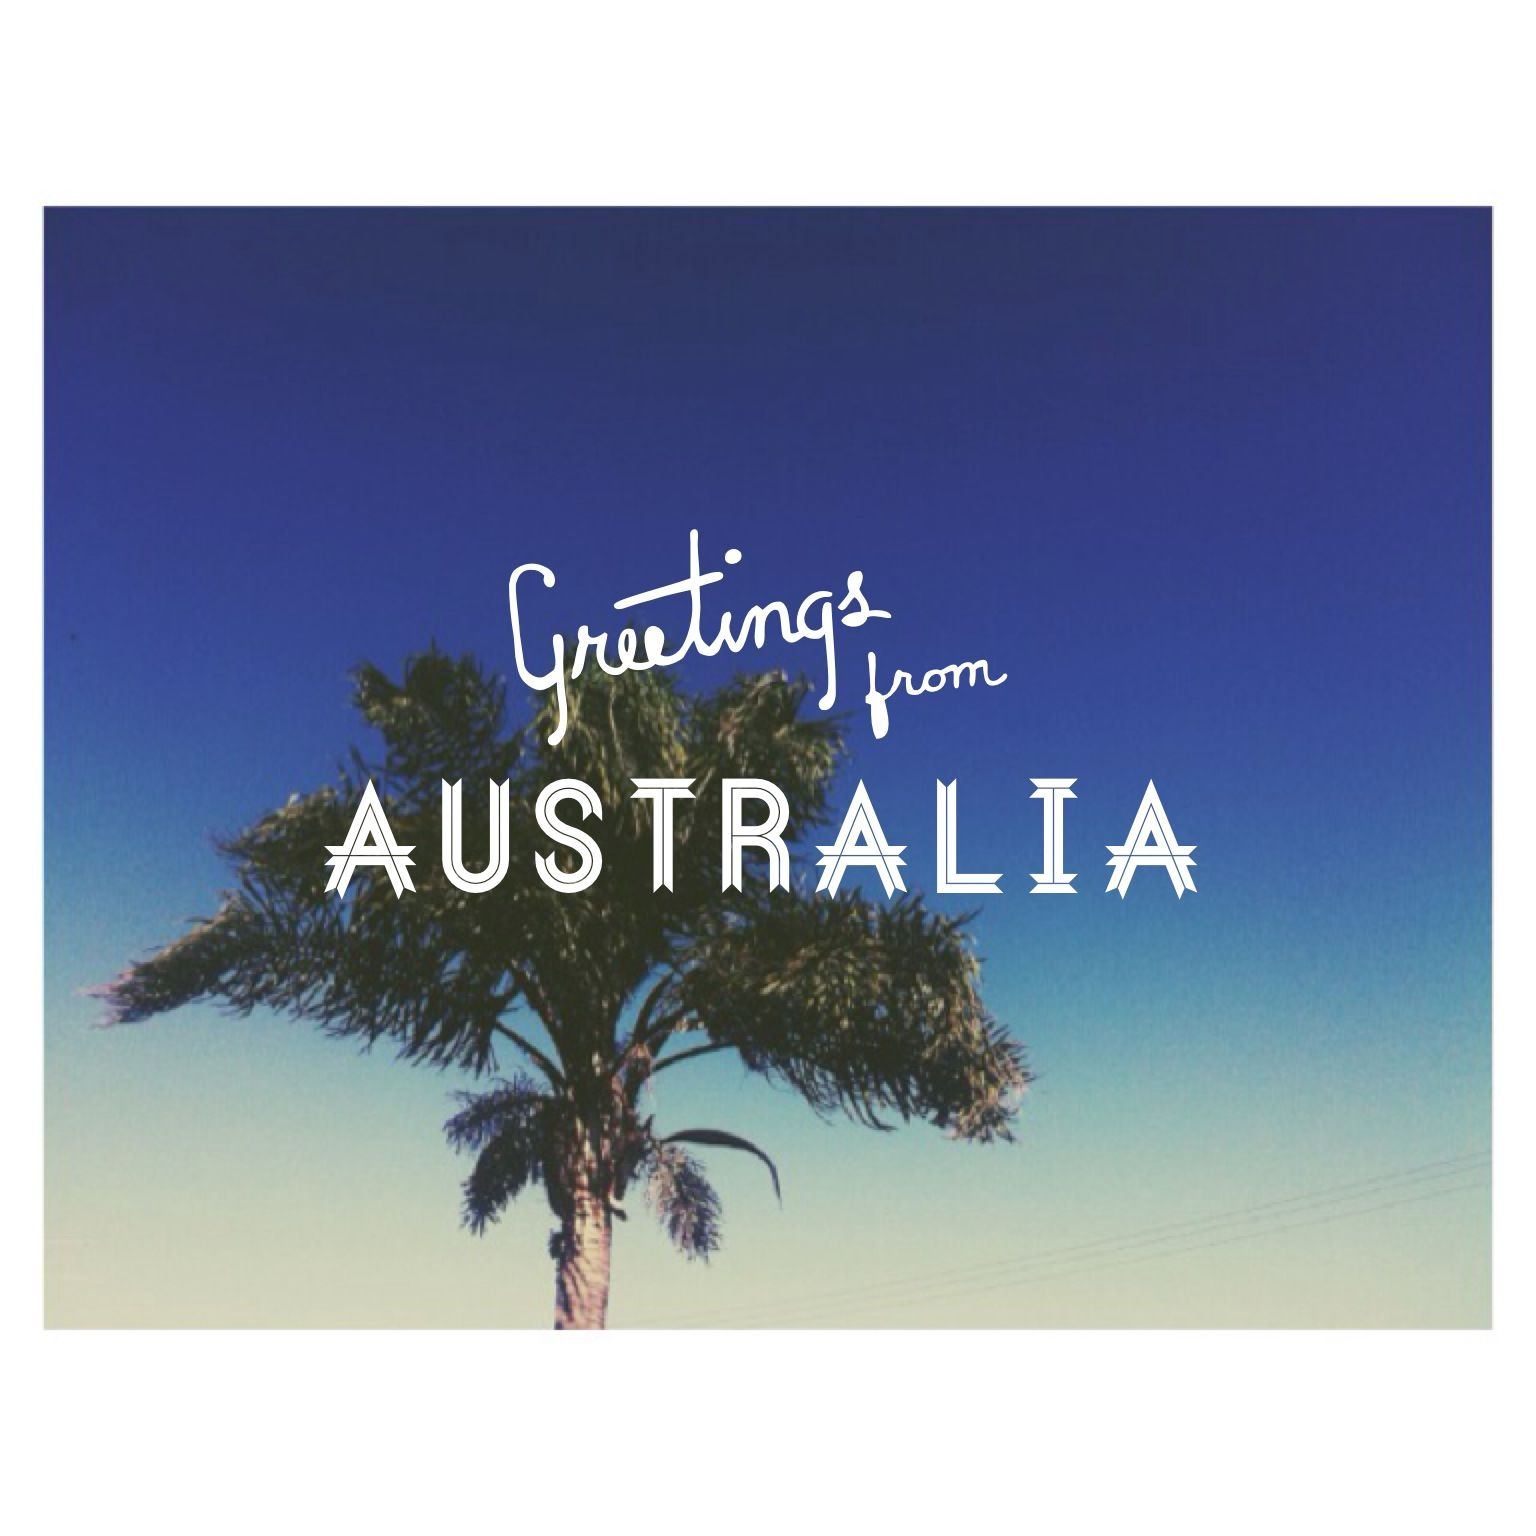 Greetings From Australia | YWAM Australia  #ywam #ywamnewcastle